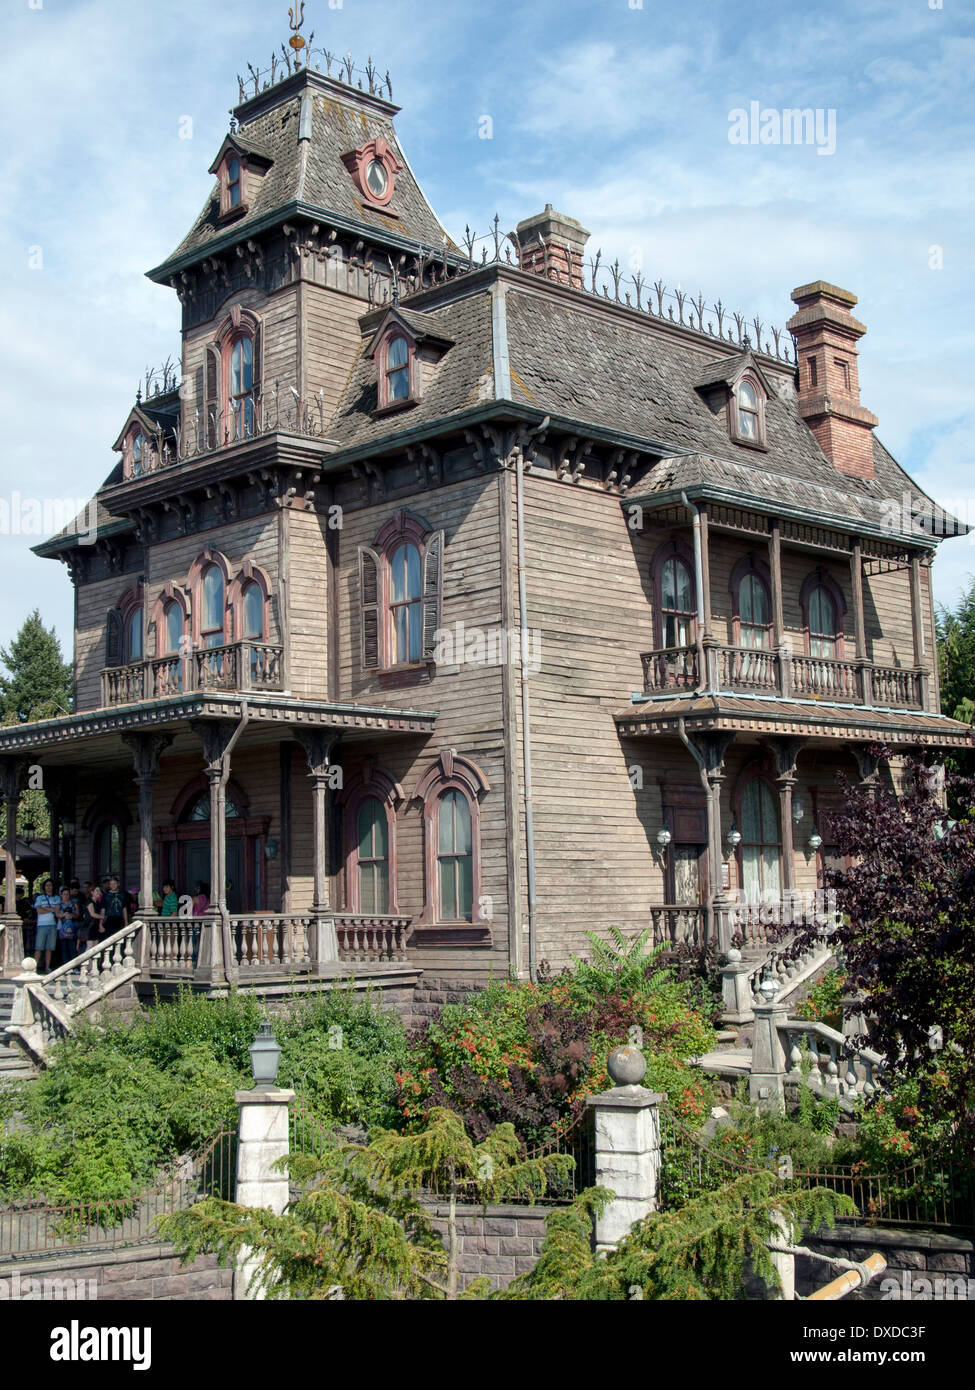 Necas New Ultimate Jason Voorhees Final Chapter Action Figure likewise W8 in addition Stock Photo Phantom Manor Haunted House At Disneyland Paris France 67907043 additionally 1114216 likewise Mr Carney Mr Meaty 550322090. on old scary wallpaper